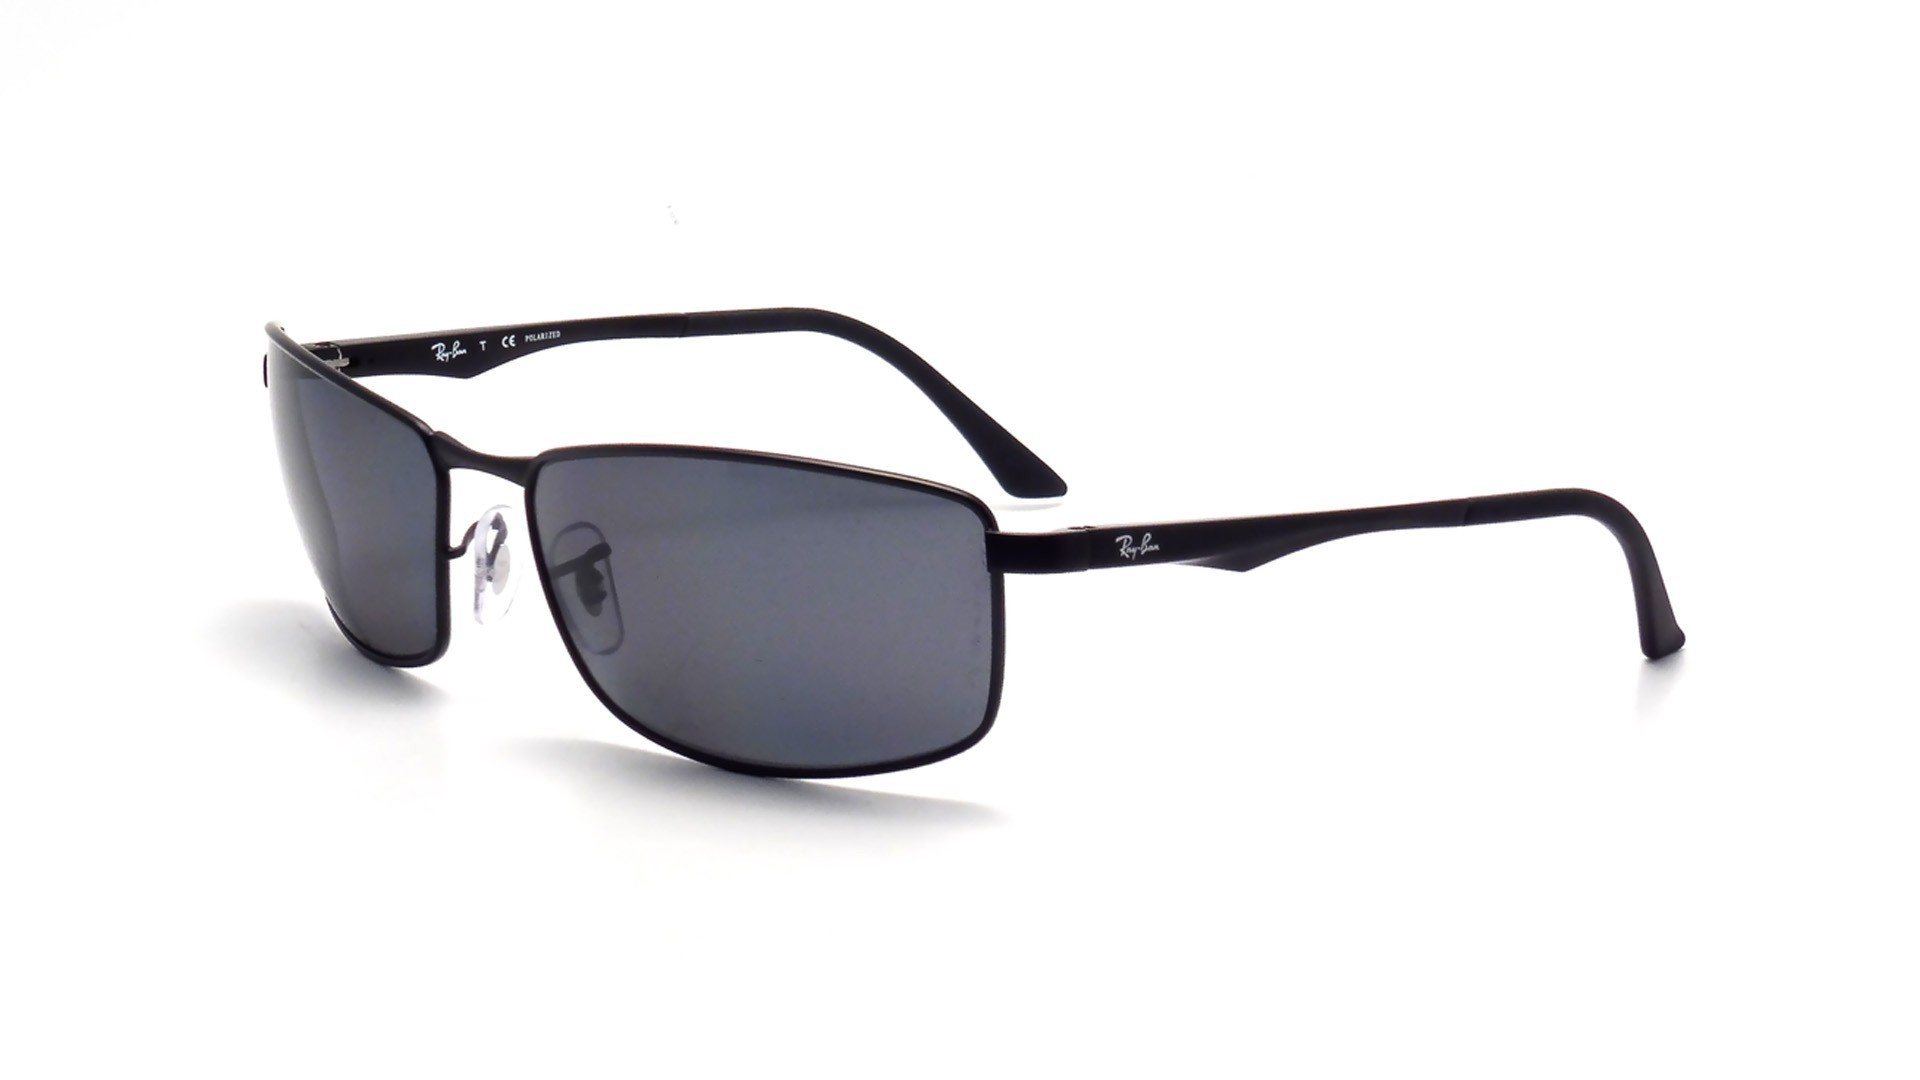 4a0363499c0 Sunglasses Ray-Ban RB3498 006 81 64-17 Black Large Polarized